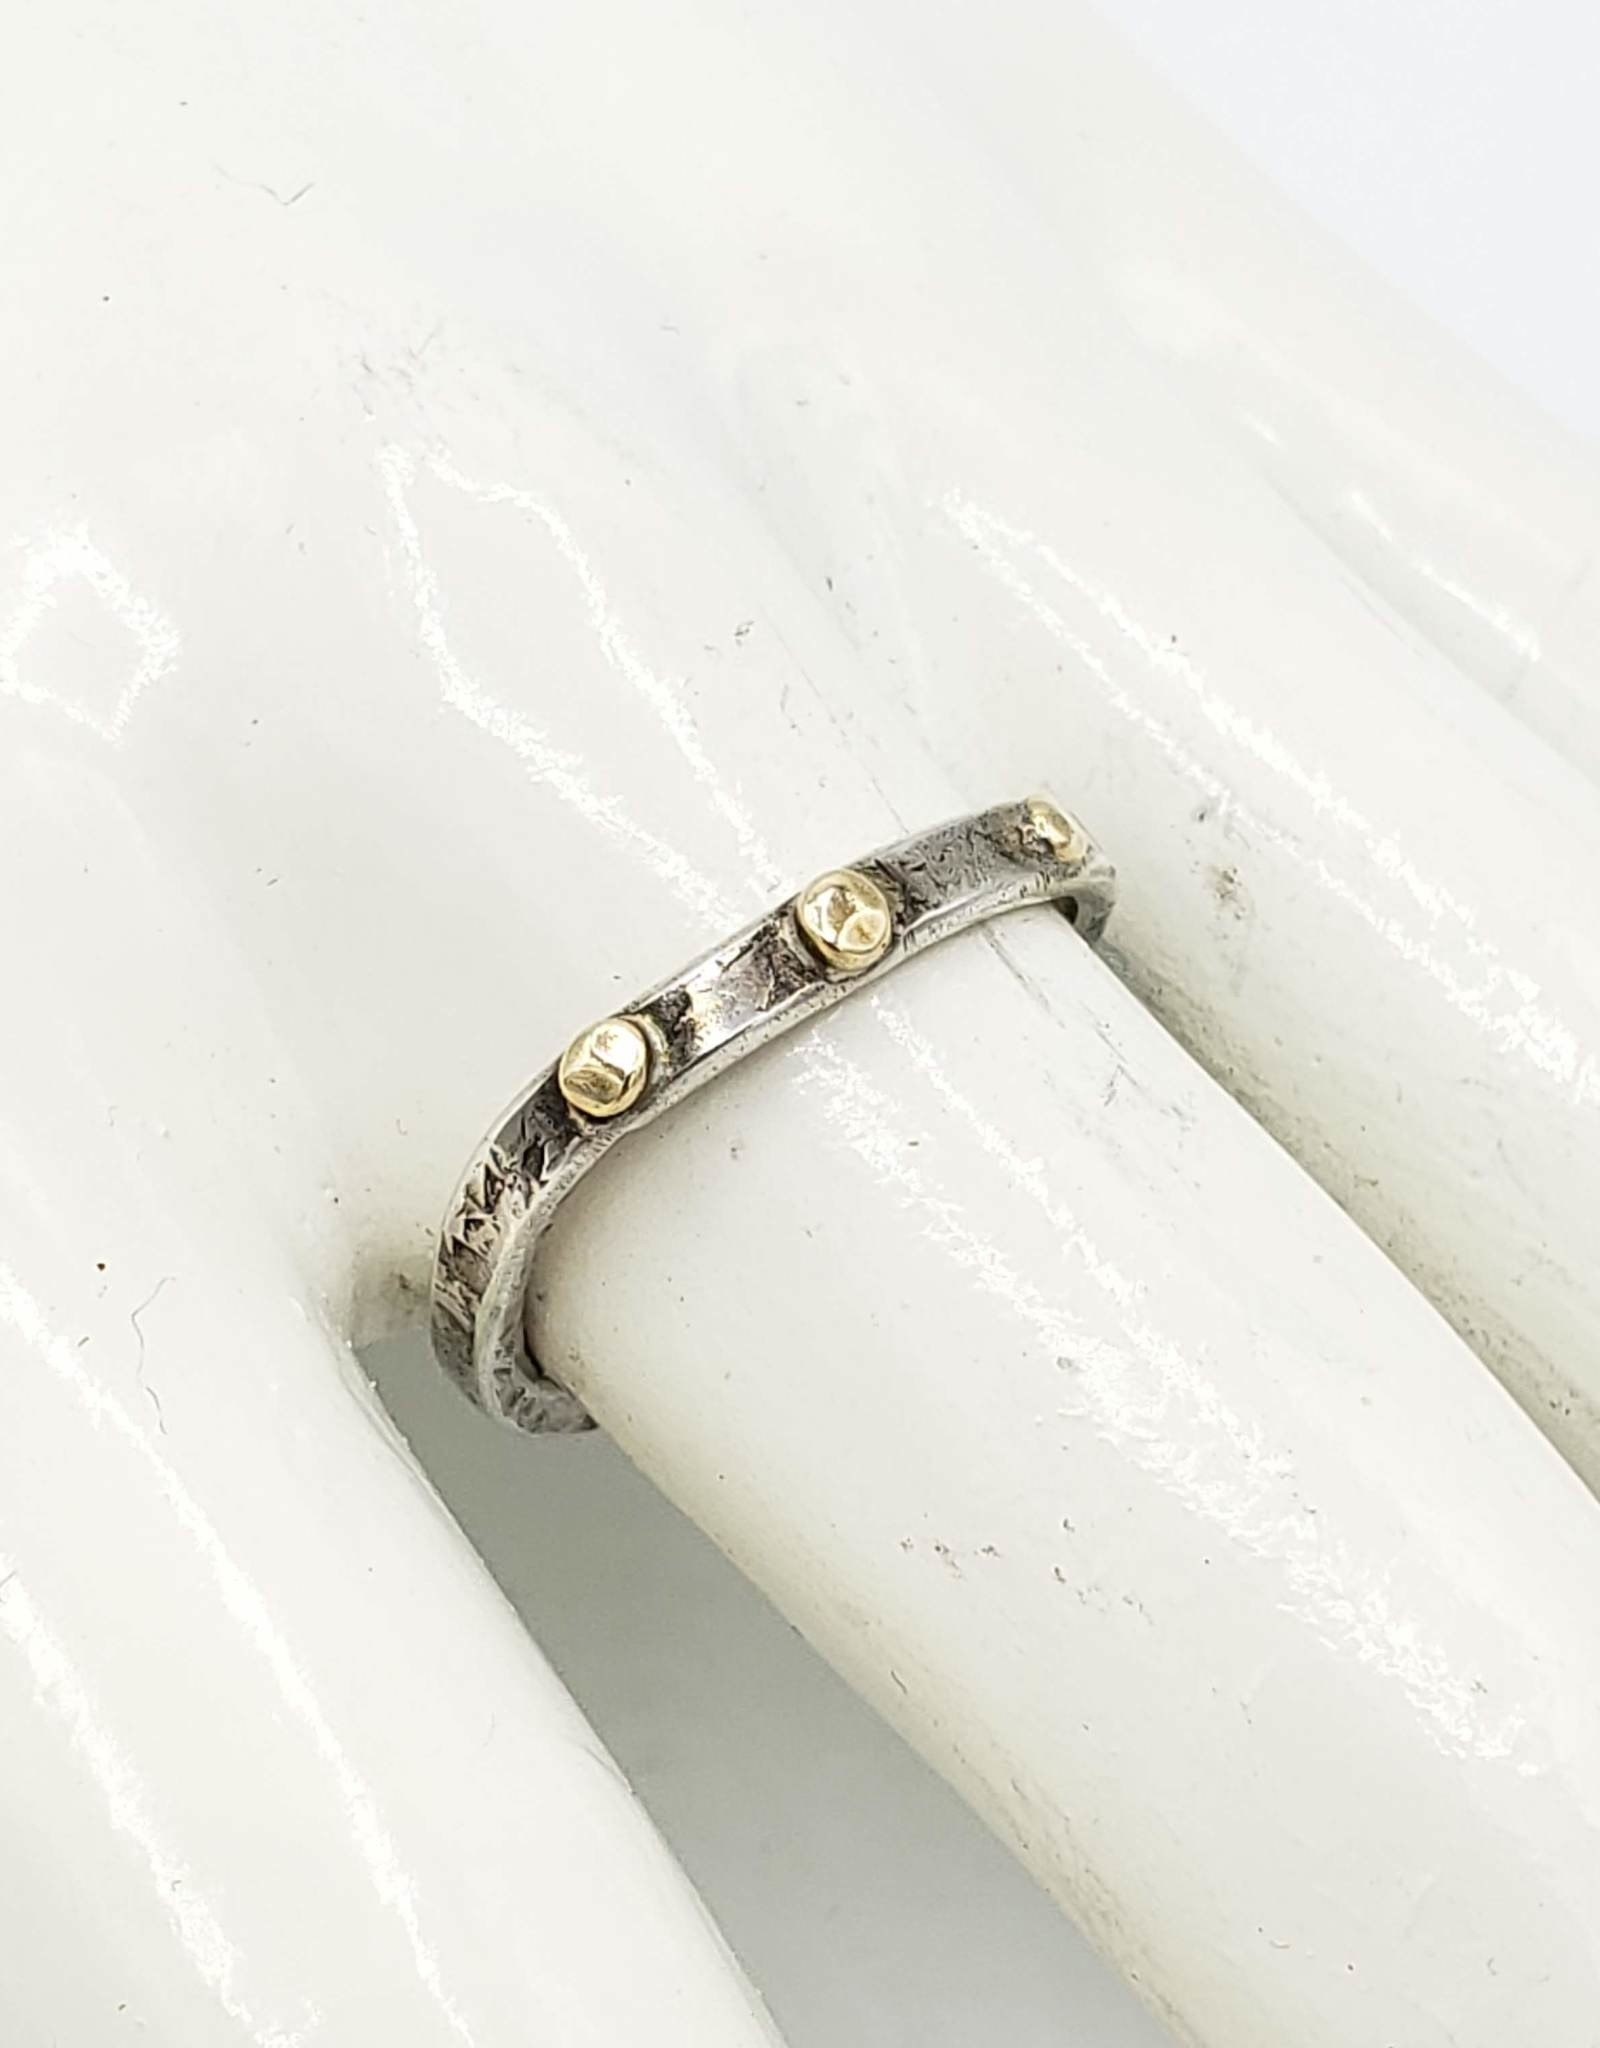 From the Reliquary Orion Ring, Sterling Silver Band w/brass dots